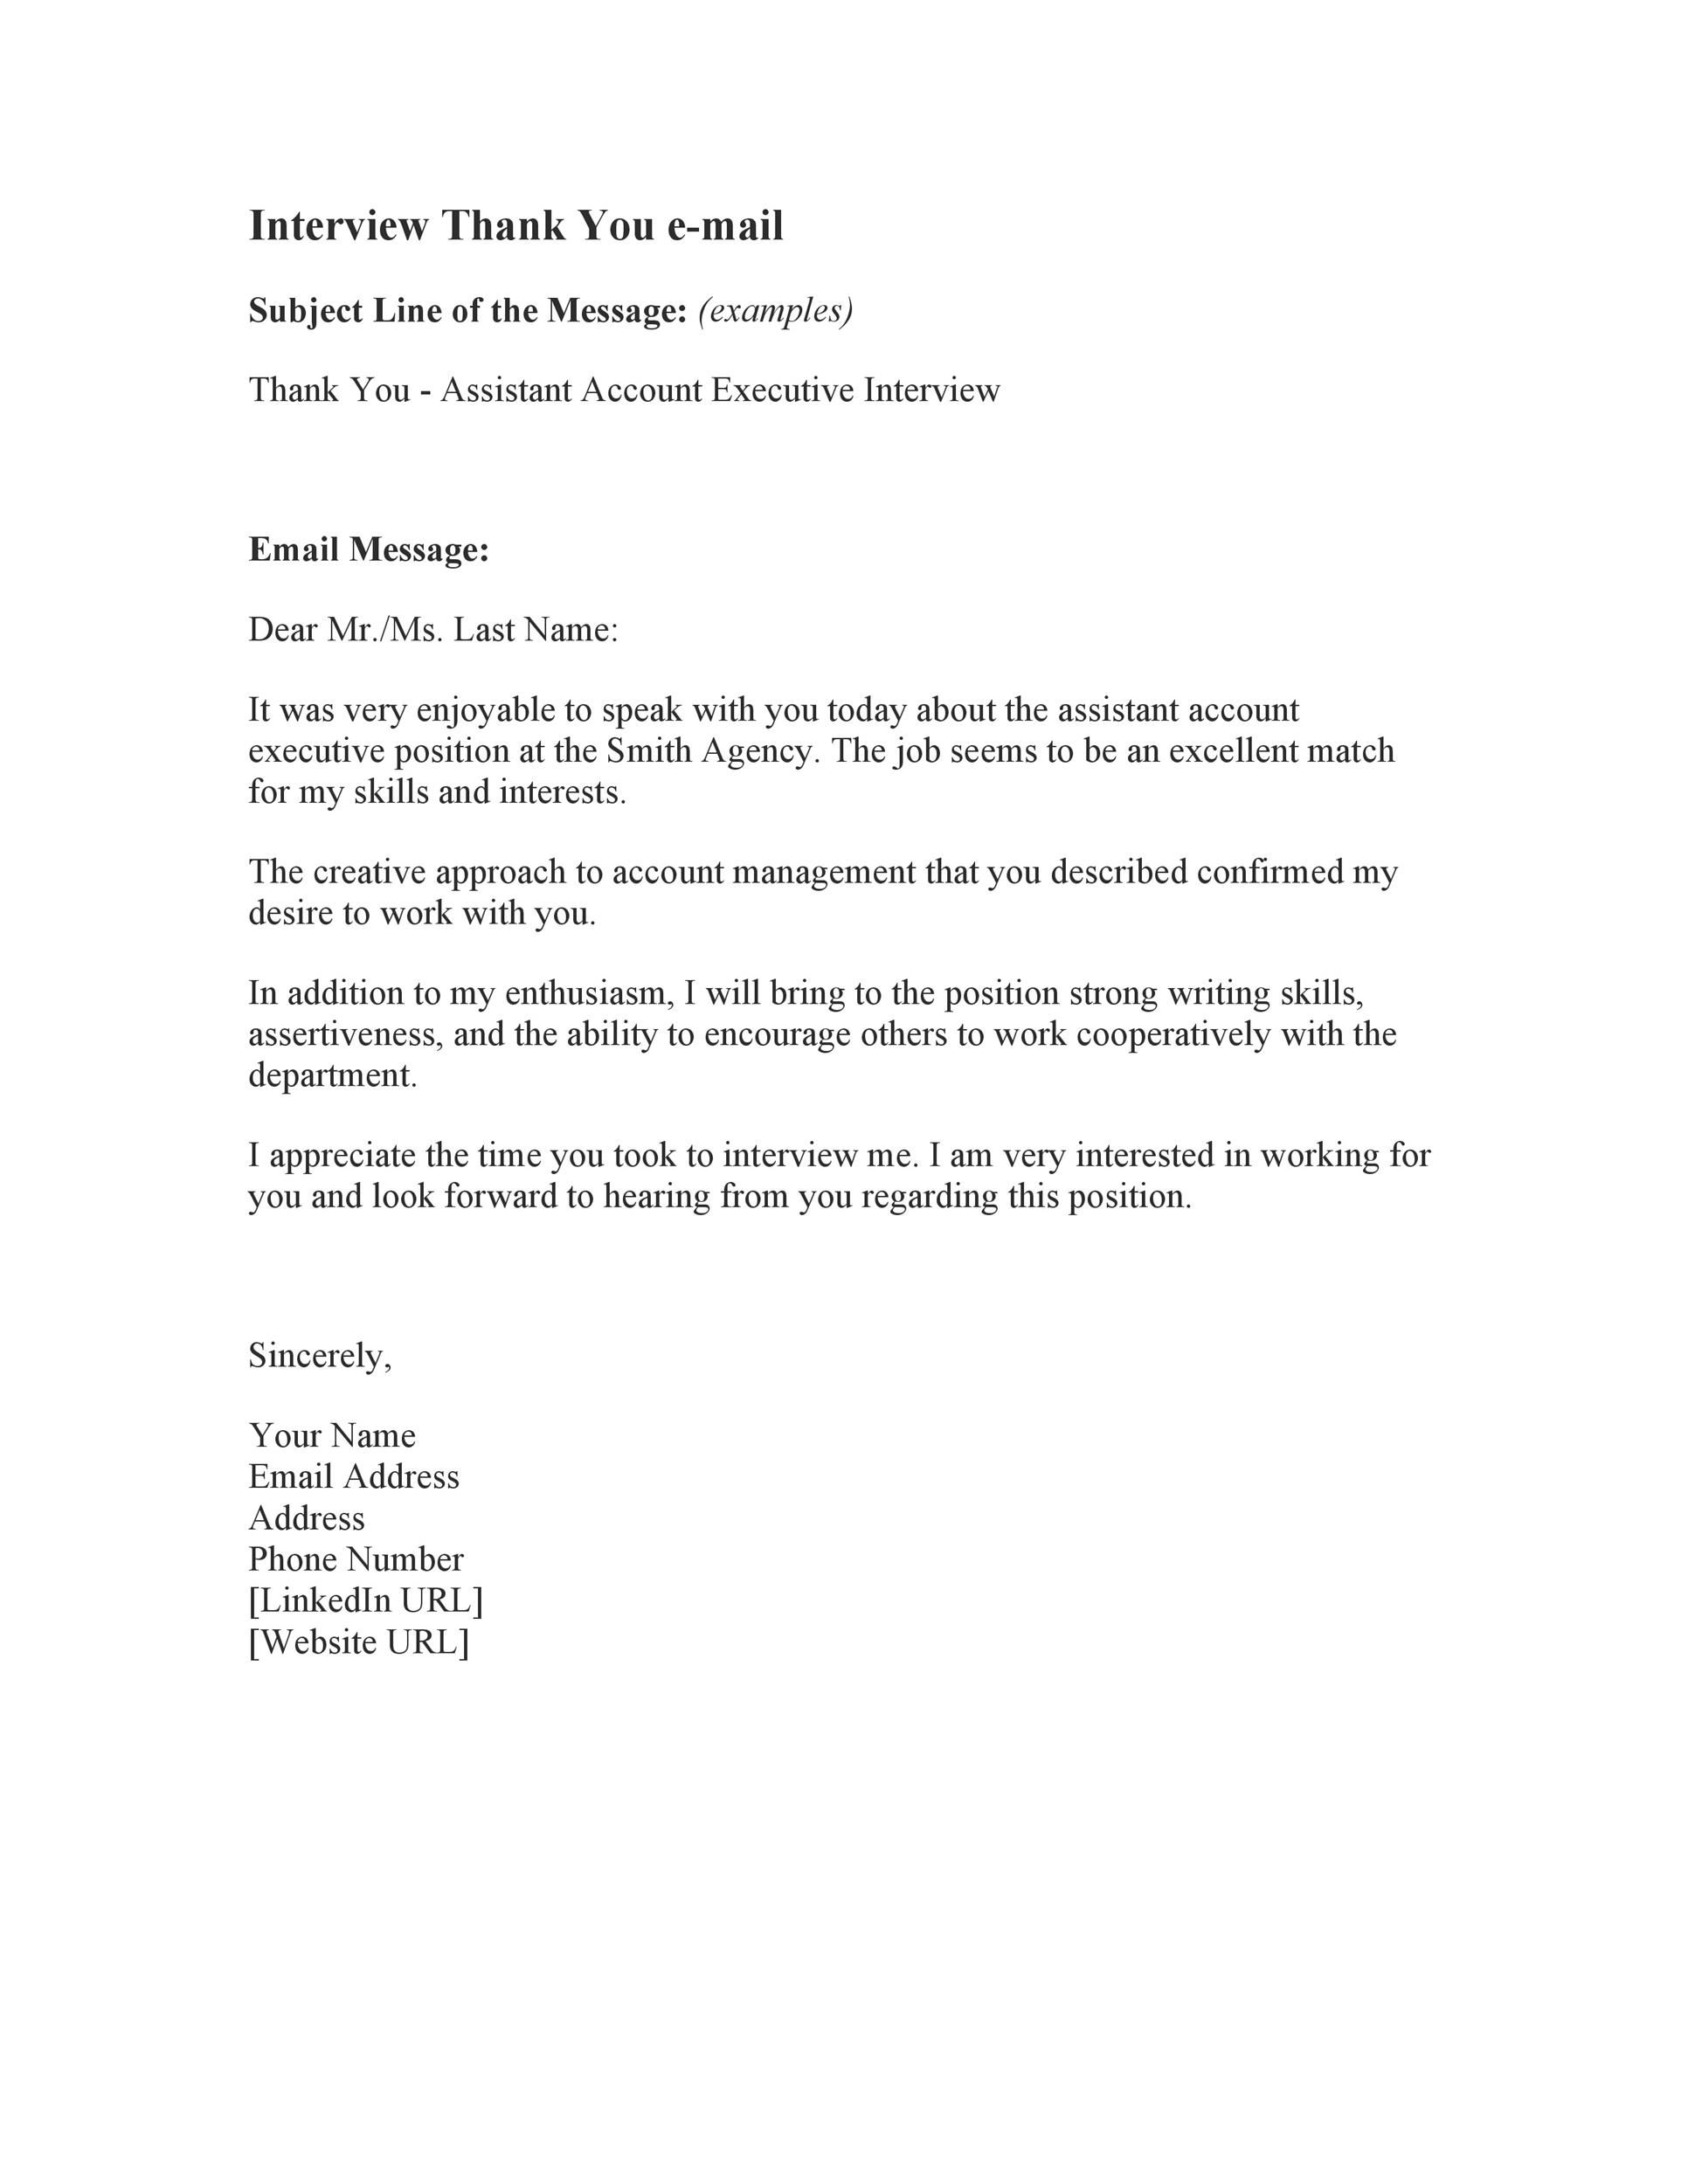 007 Impressive Interview Thank You Email Template High Resolution  After Phone Sample 2nd PostFull